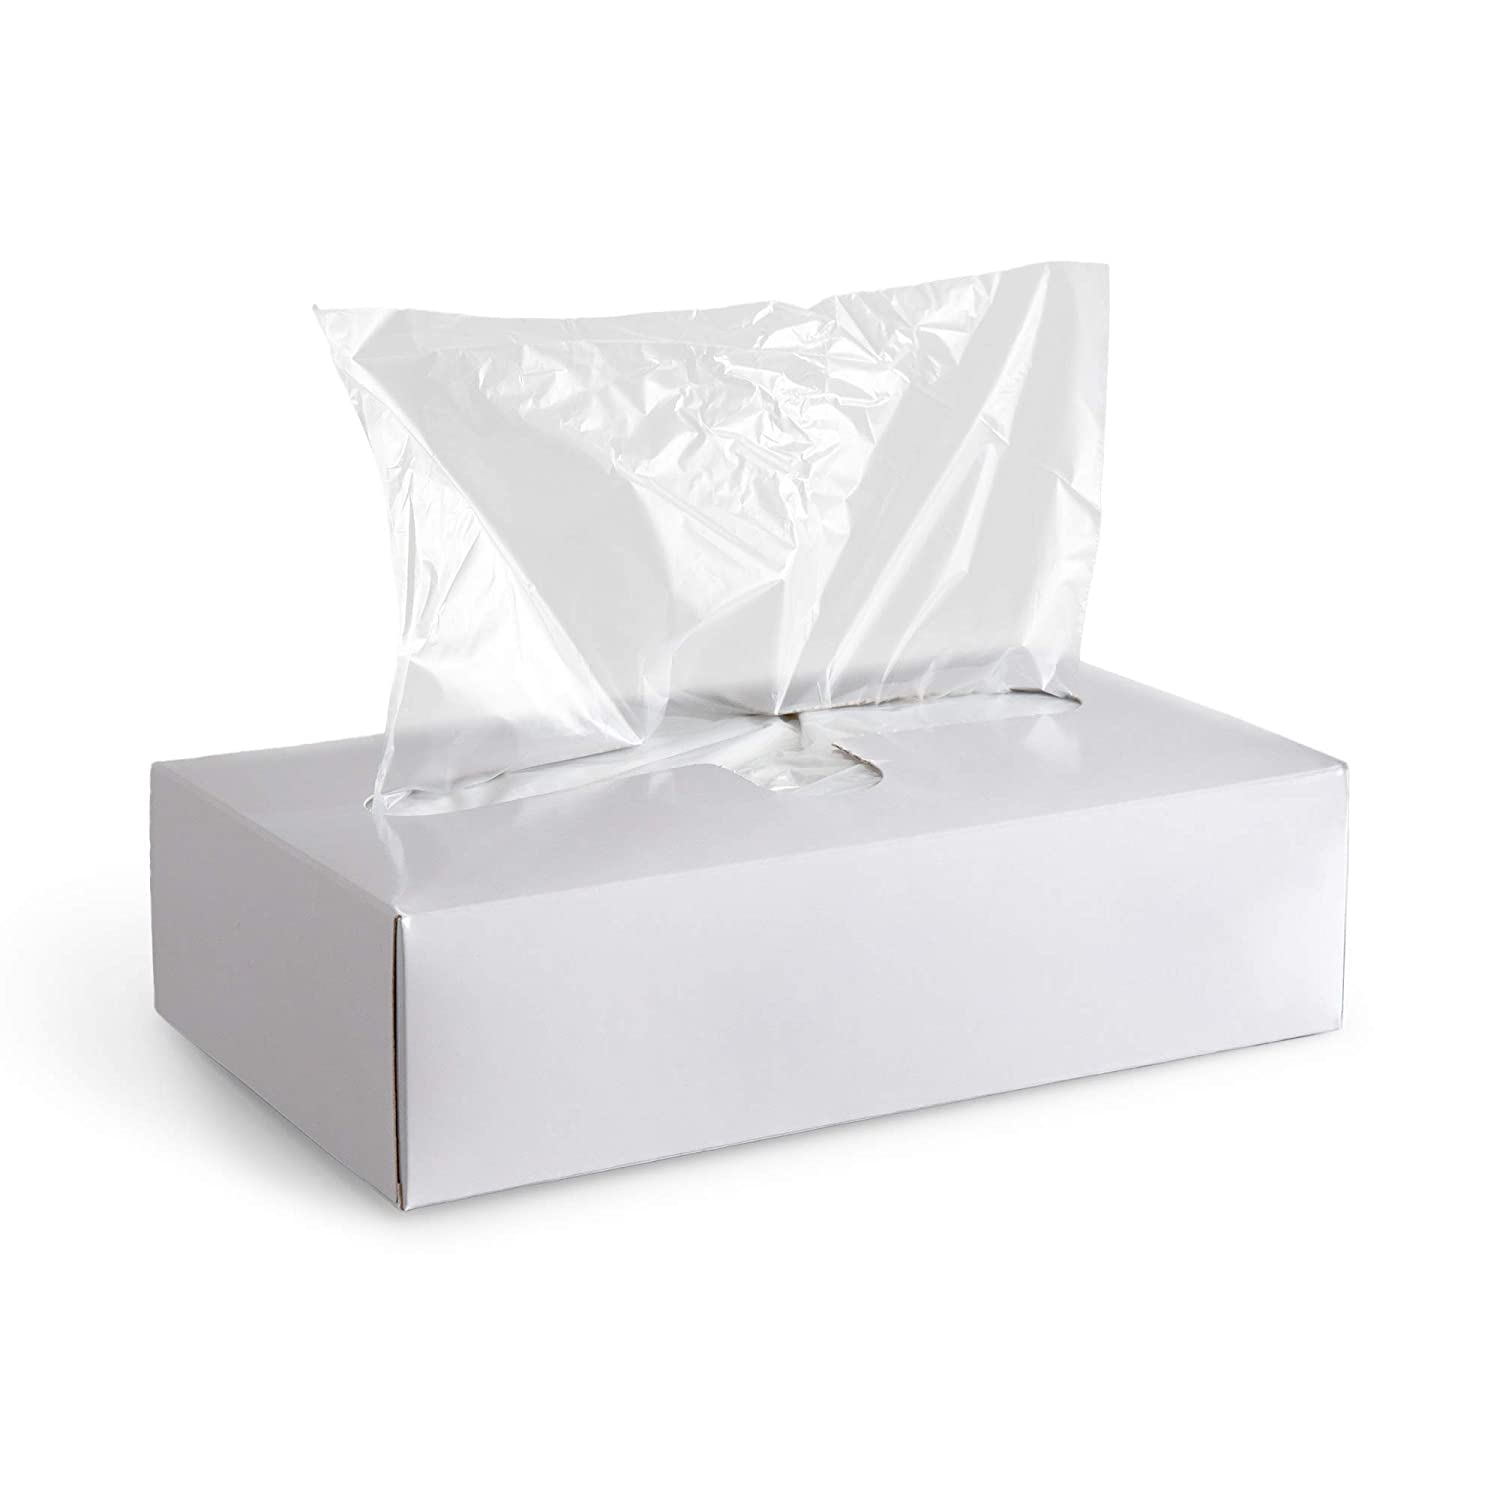 APQ Pack of 1000 Deli and Bakery Wrap Plastic Sheets 10 x 10 3/4. Pop-Up Poly Sheets 10 x 10.75 Food Wrapping Sheets for Foodservice Applications, Sandwiches, Subs, Cookies, Candies.